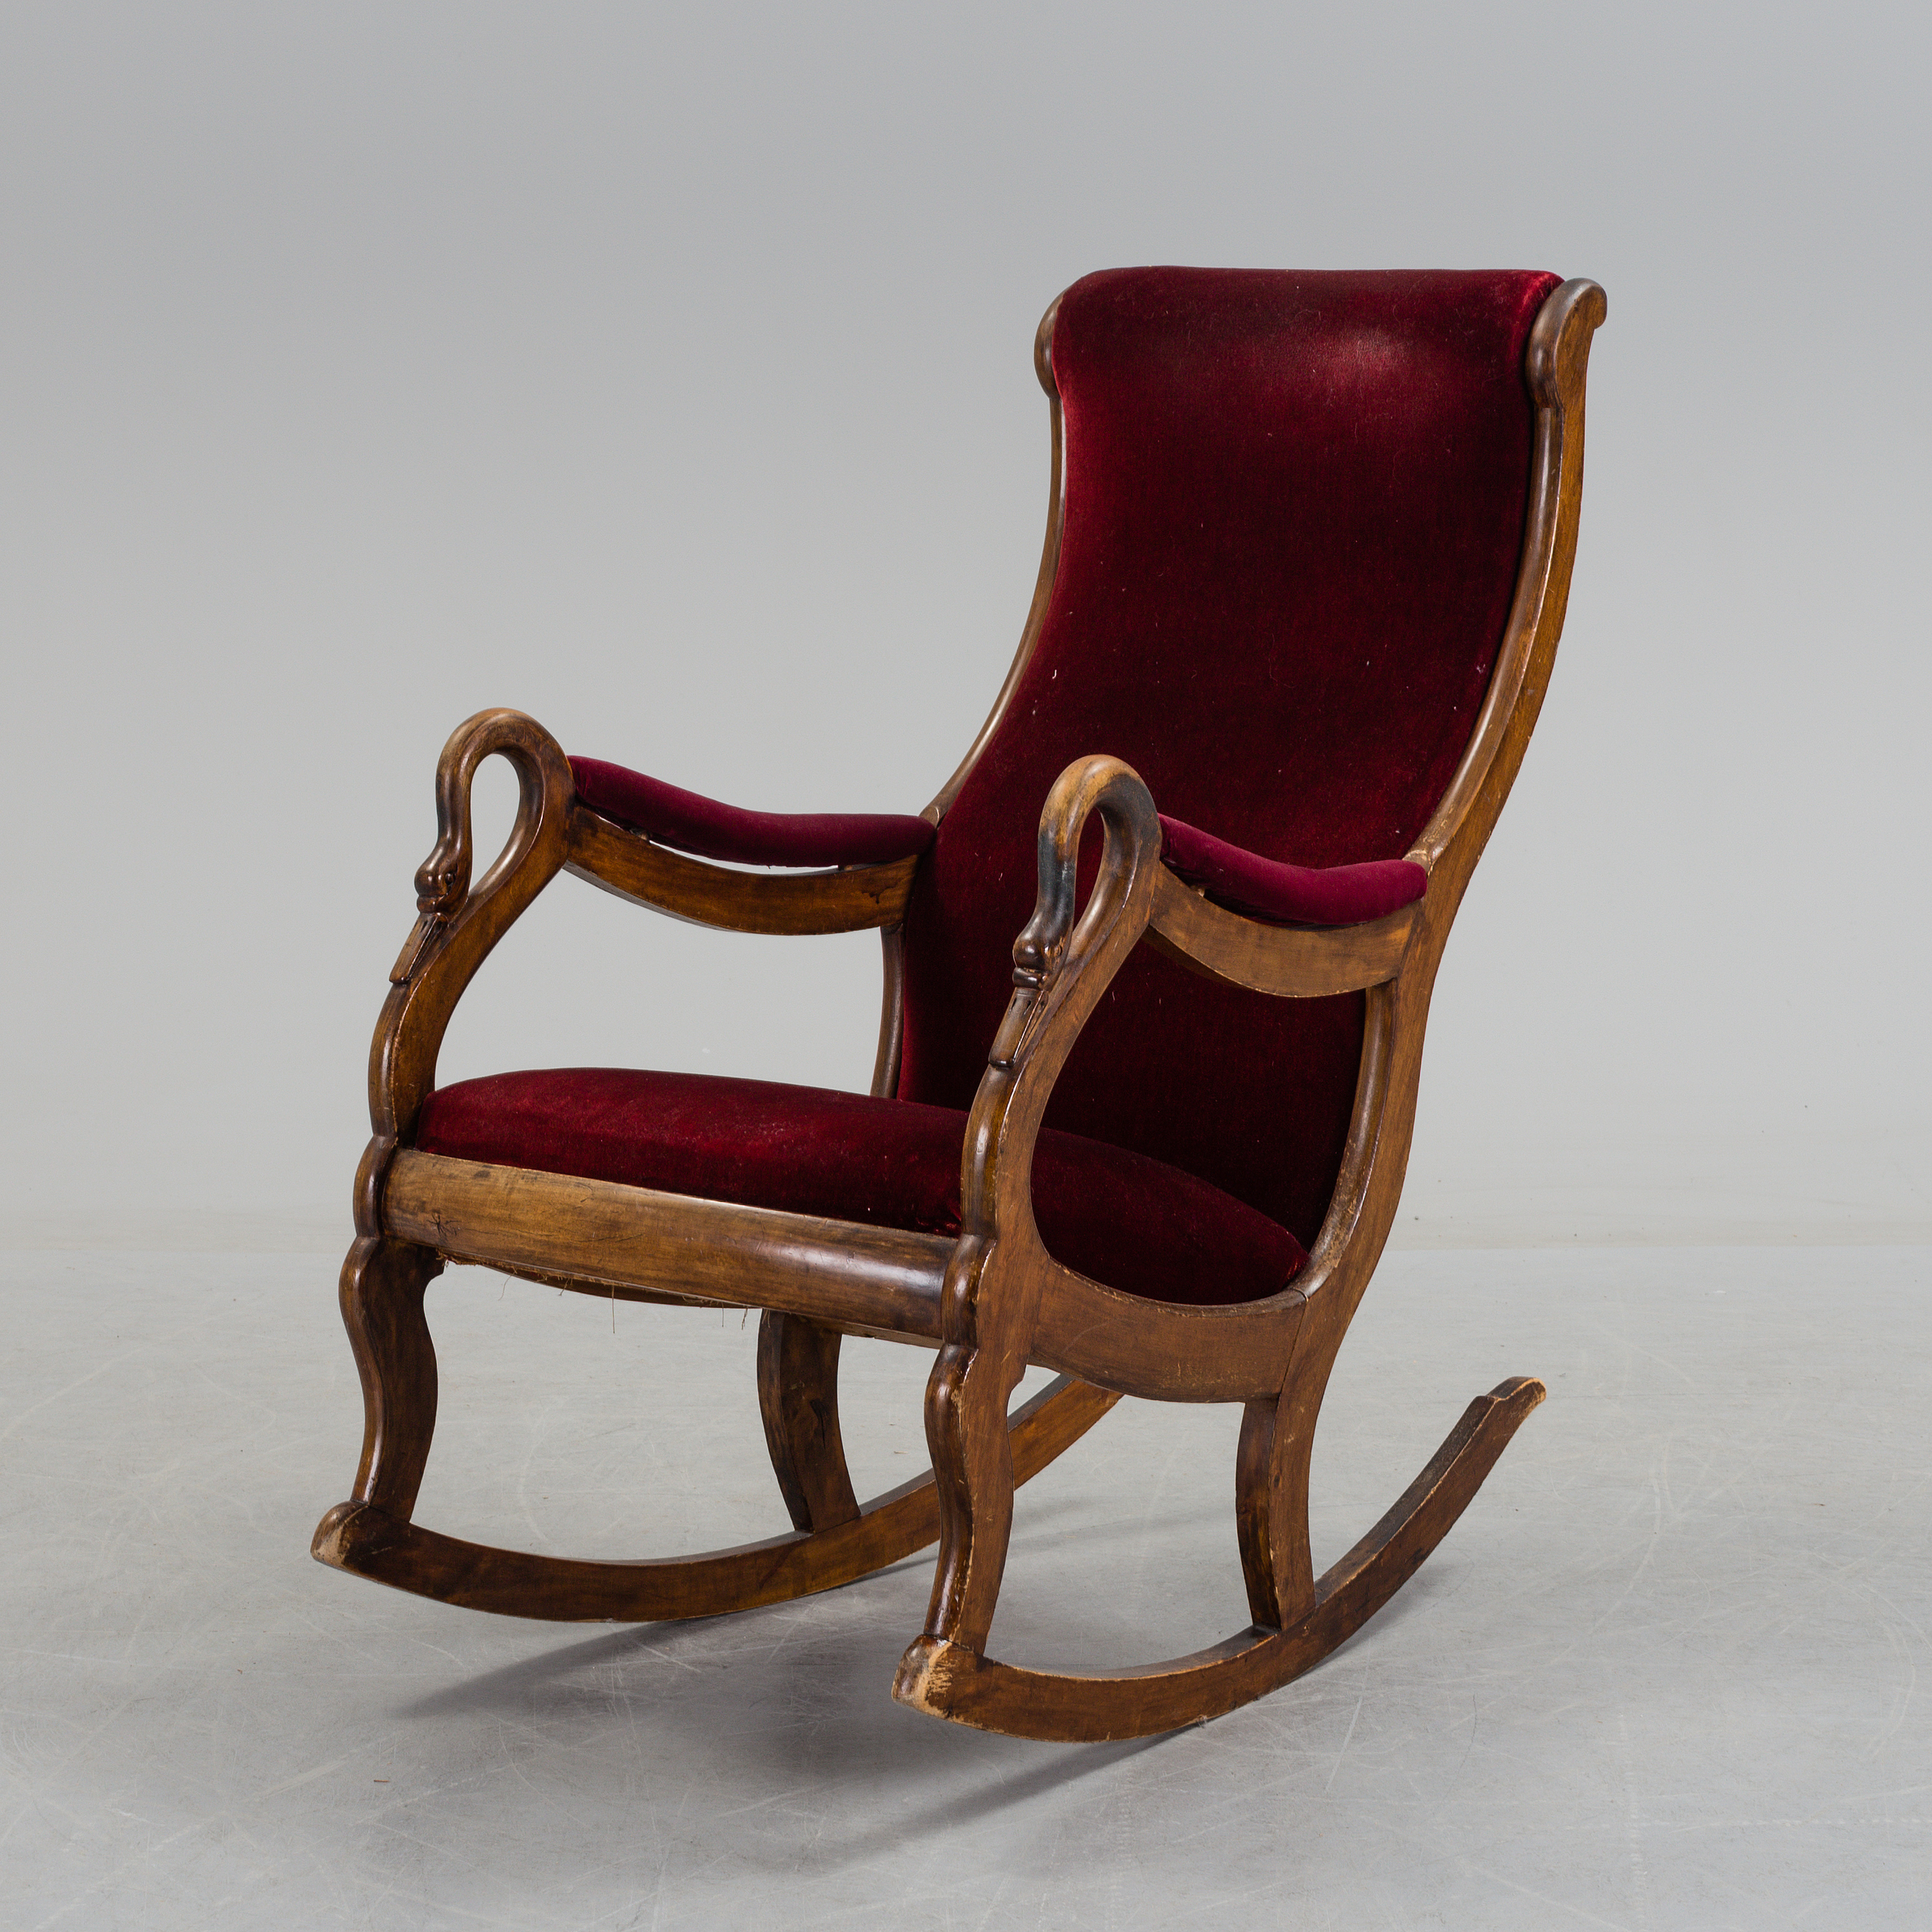 Tremendous A 19Th Century Swan Arm Rocking Chair Bukowskis Ncnpc Chair Design For Home Ncnpcorg